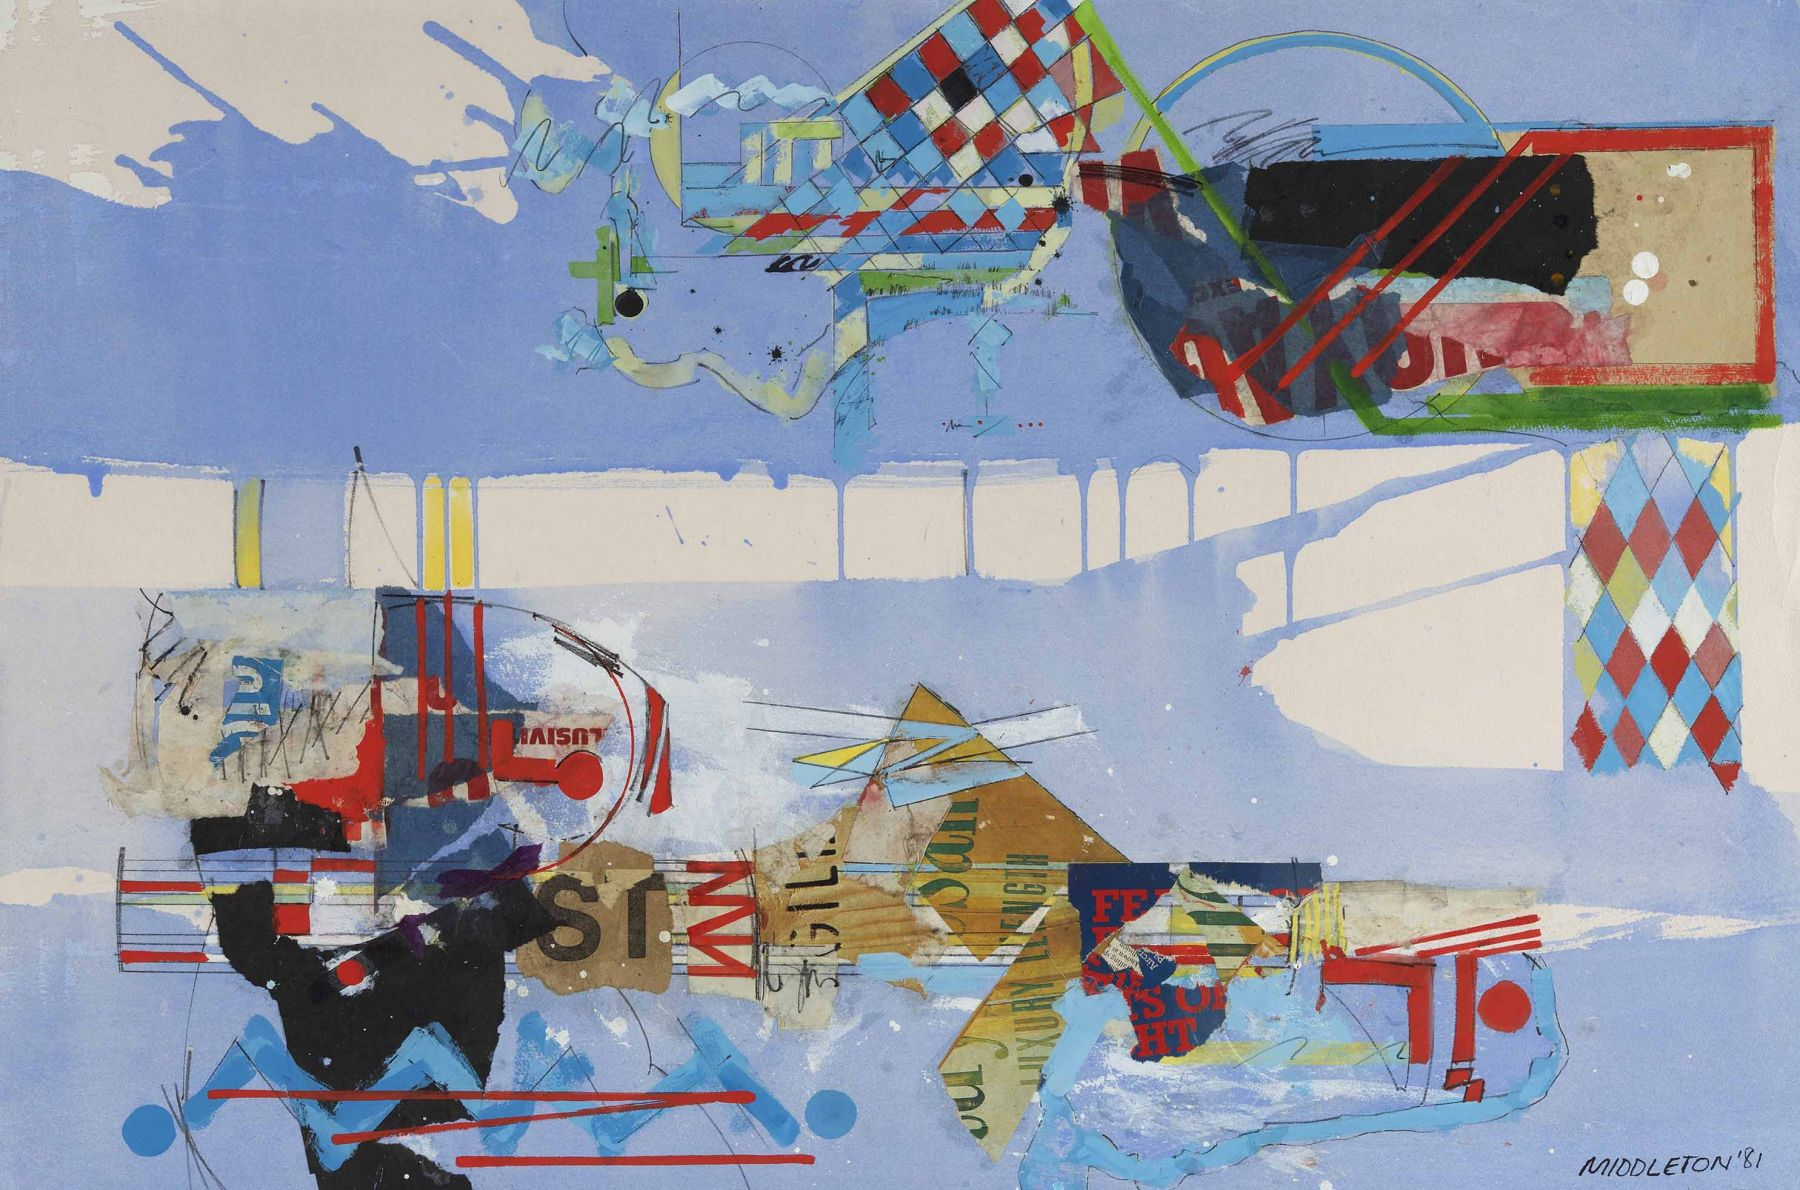 Strong World,1981, Mixed media on paper